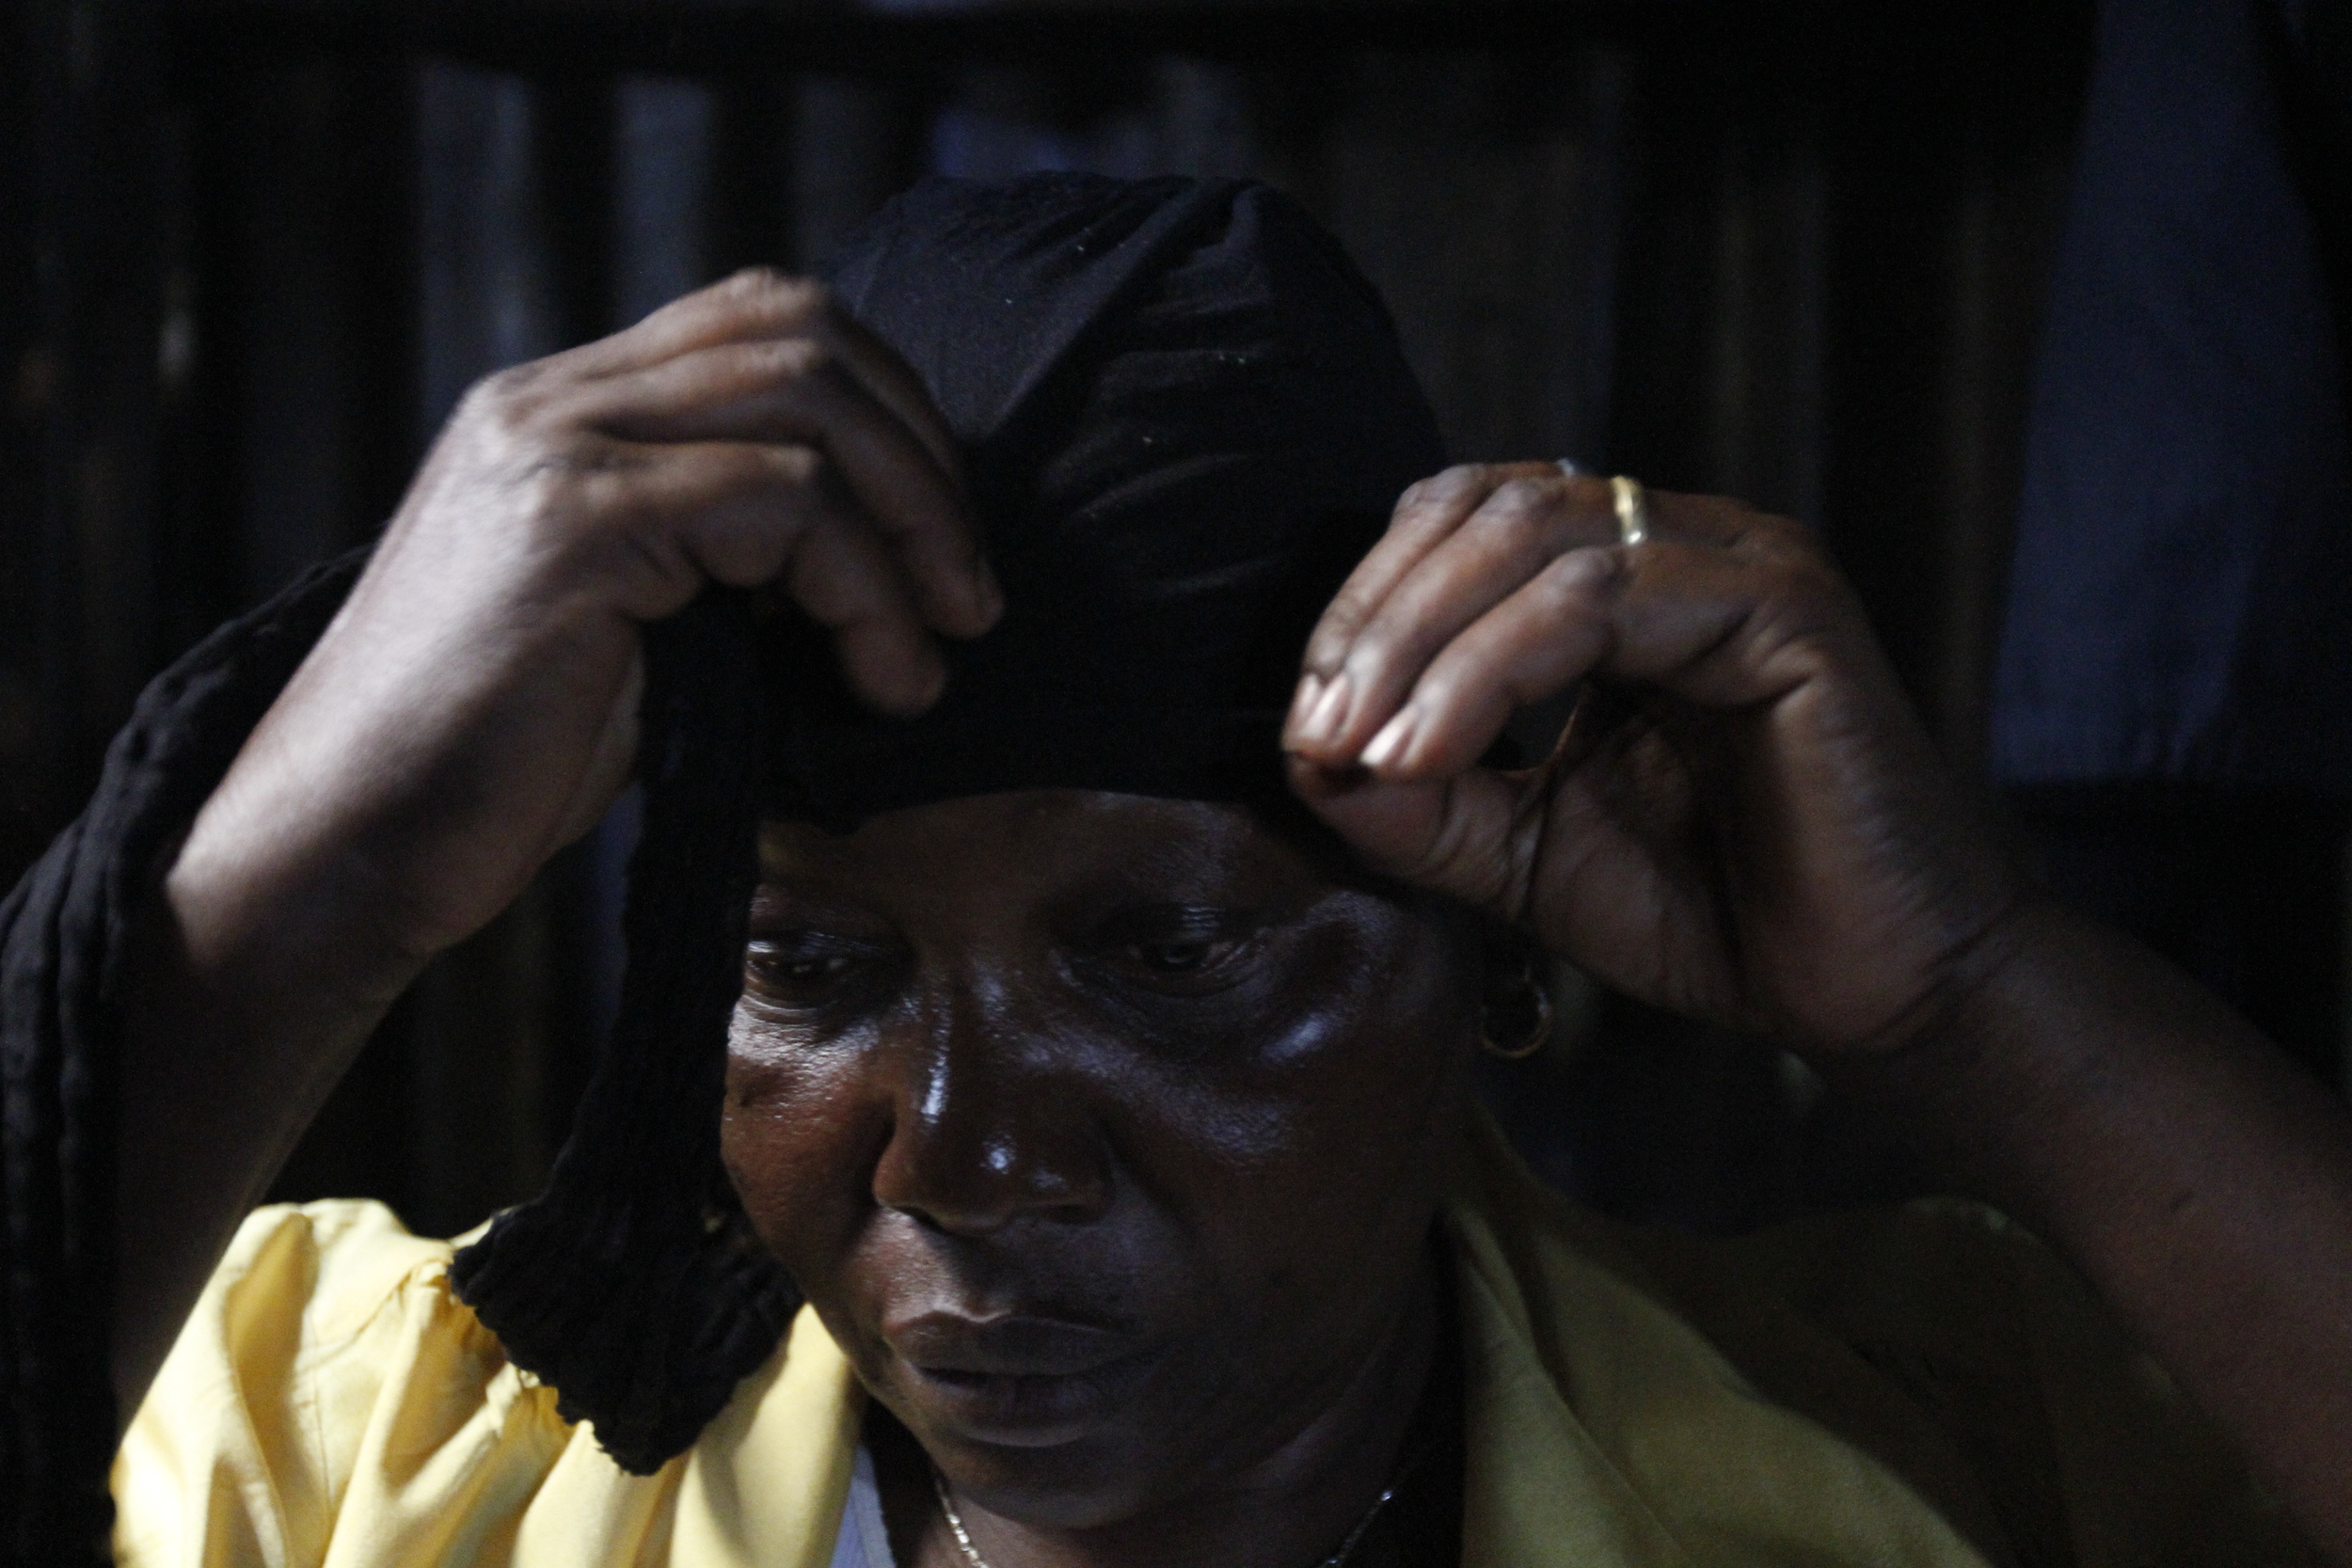 Rosemary ties a head gear to conceal her bald head when she got due to chemotherapy